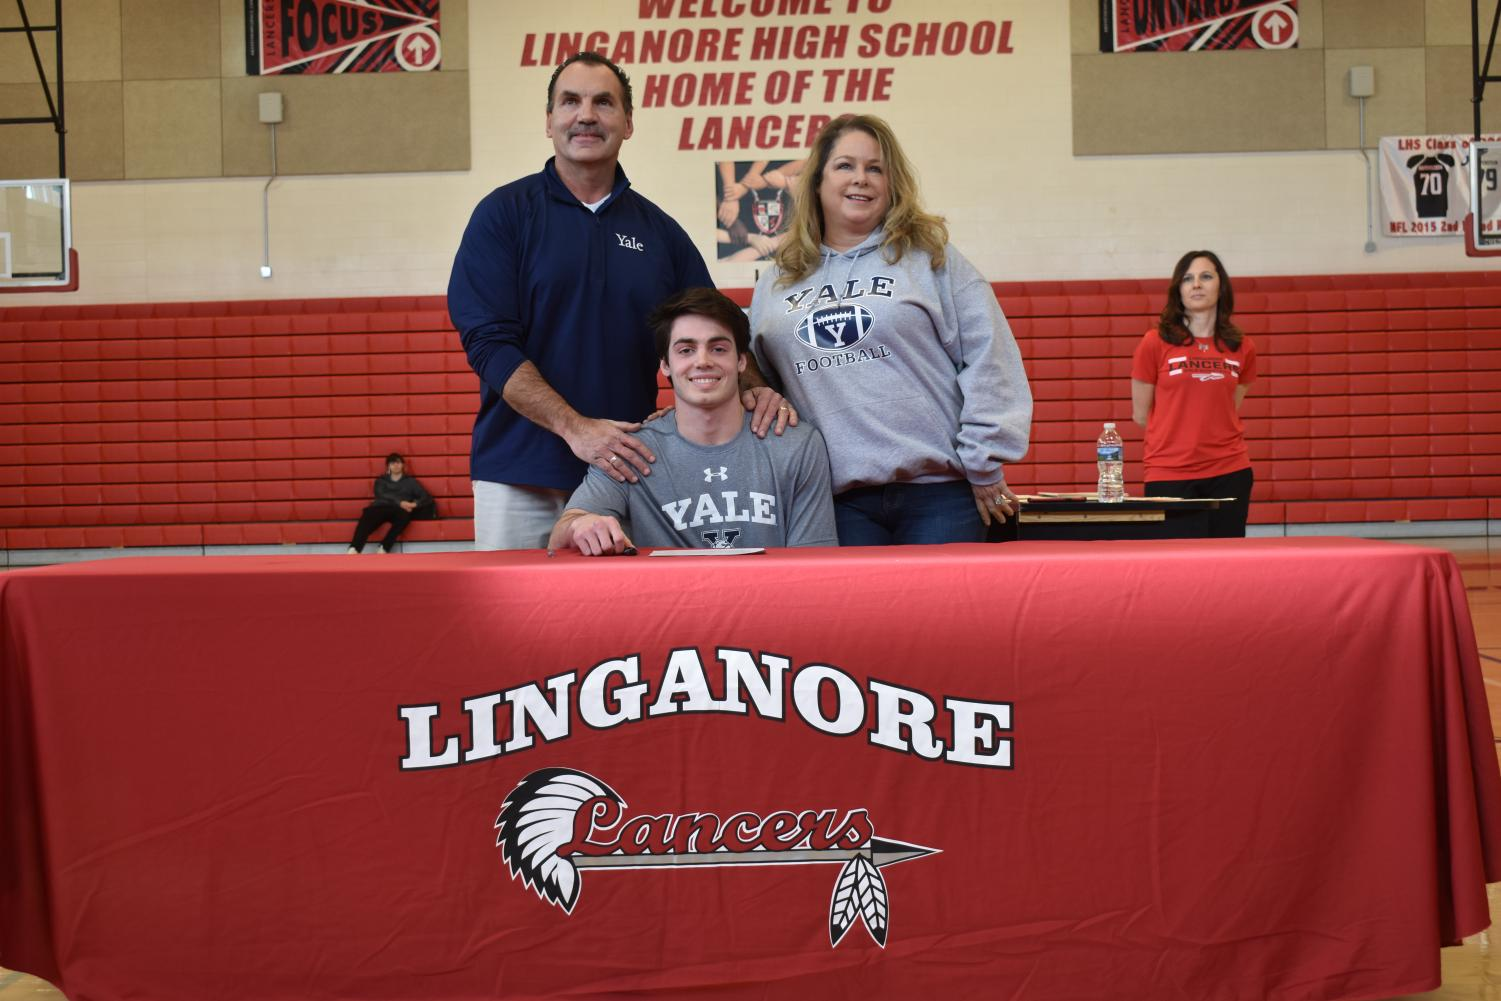 The Felton family smiles for the cameras as Joey makes commitment to Yale.